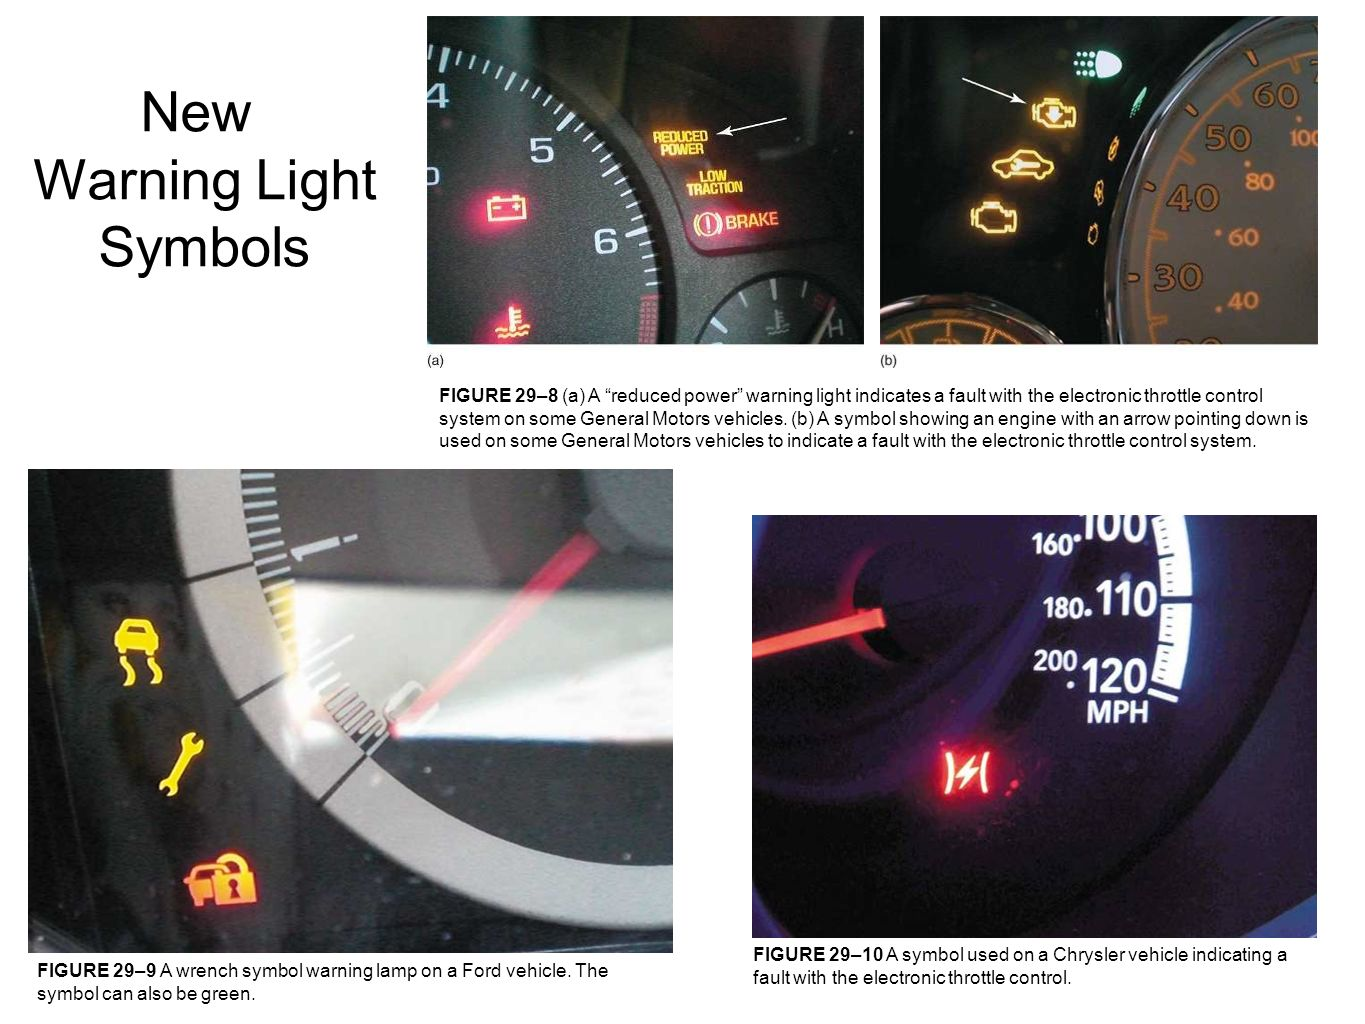 So you no longer control throttle with your foot thats not new warning light symbols biocorpaavc